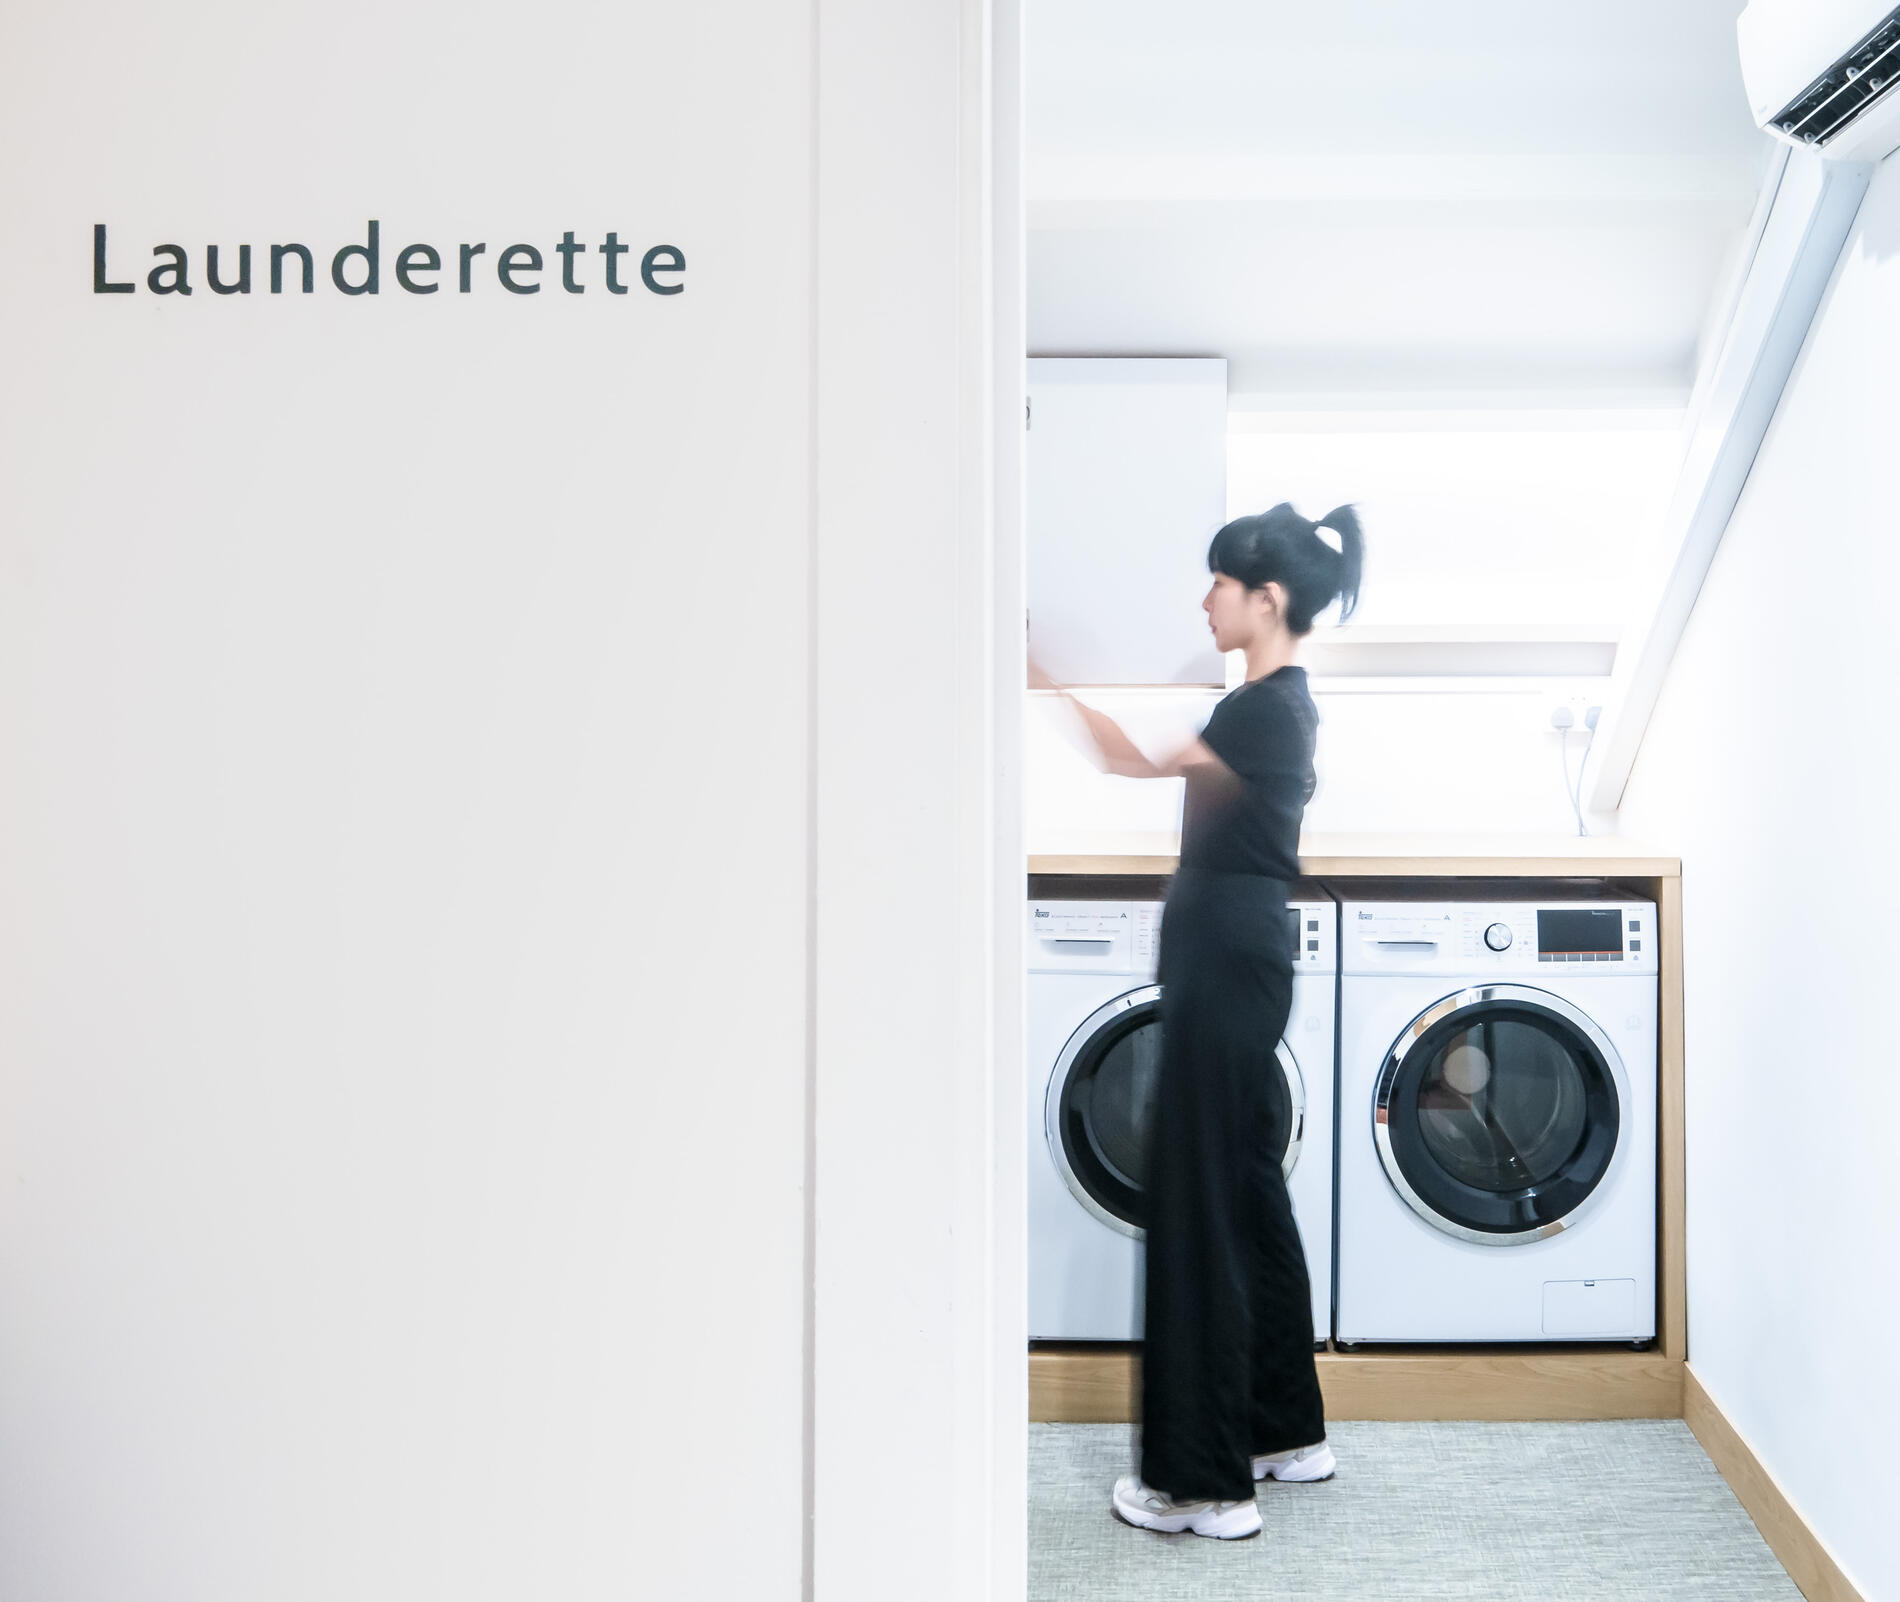 Launderette at KēSa House